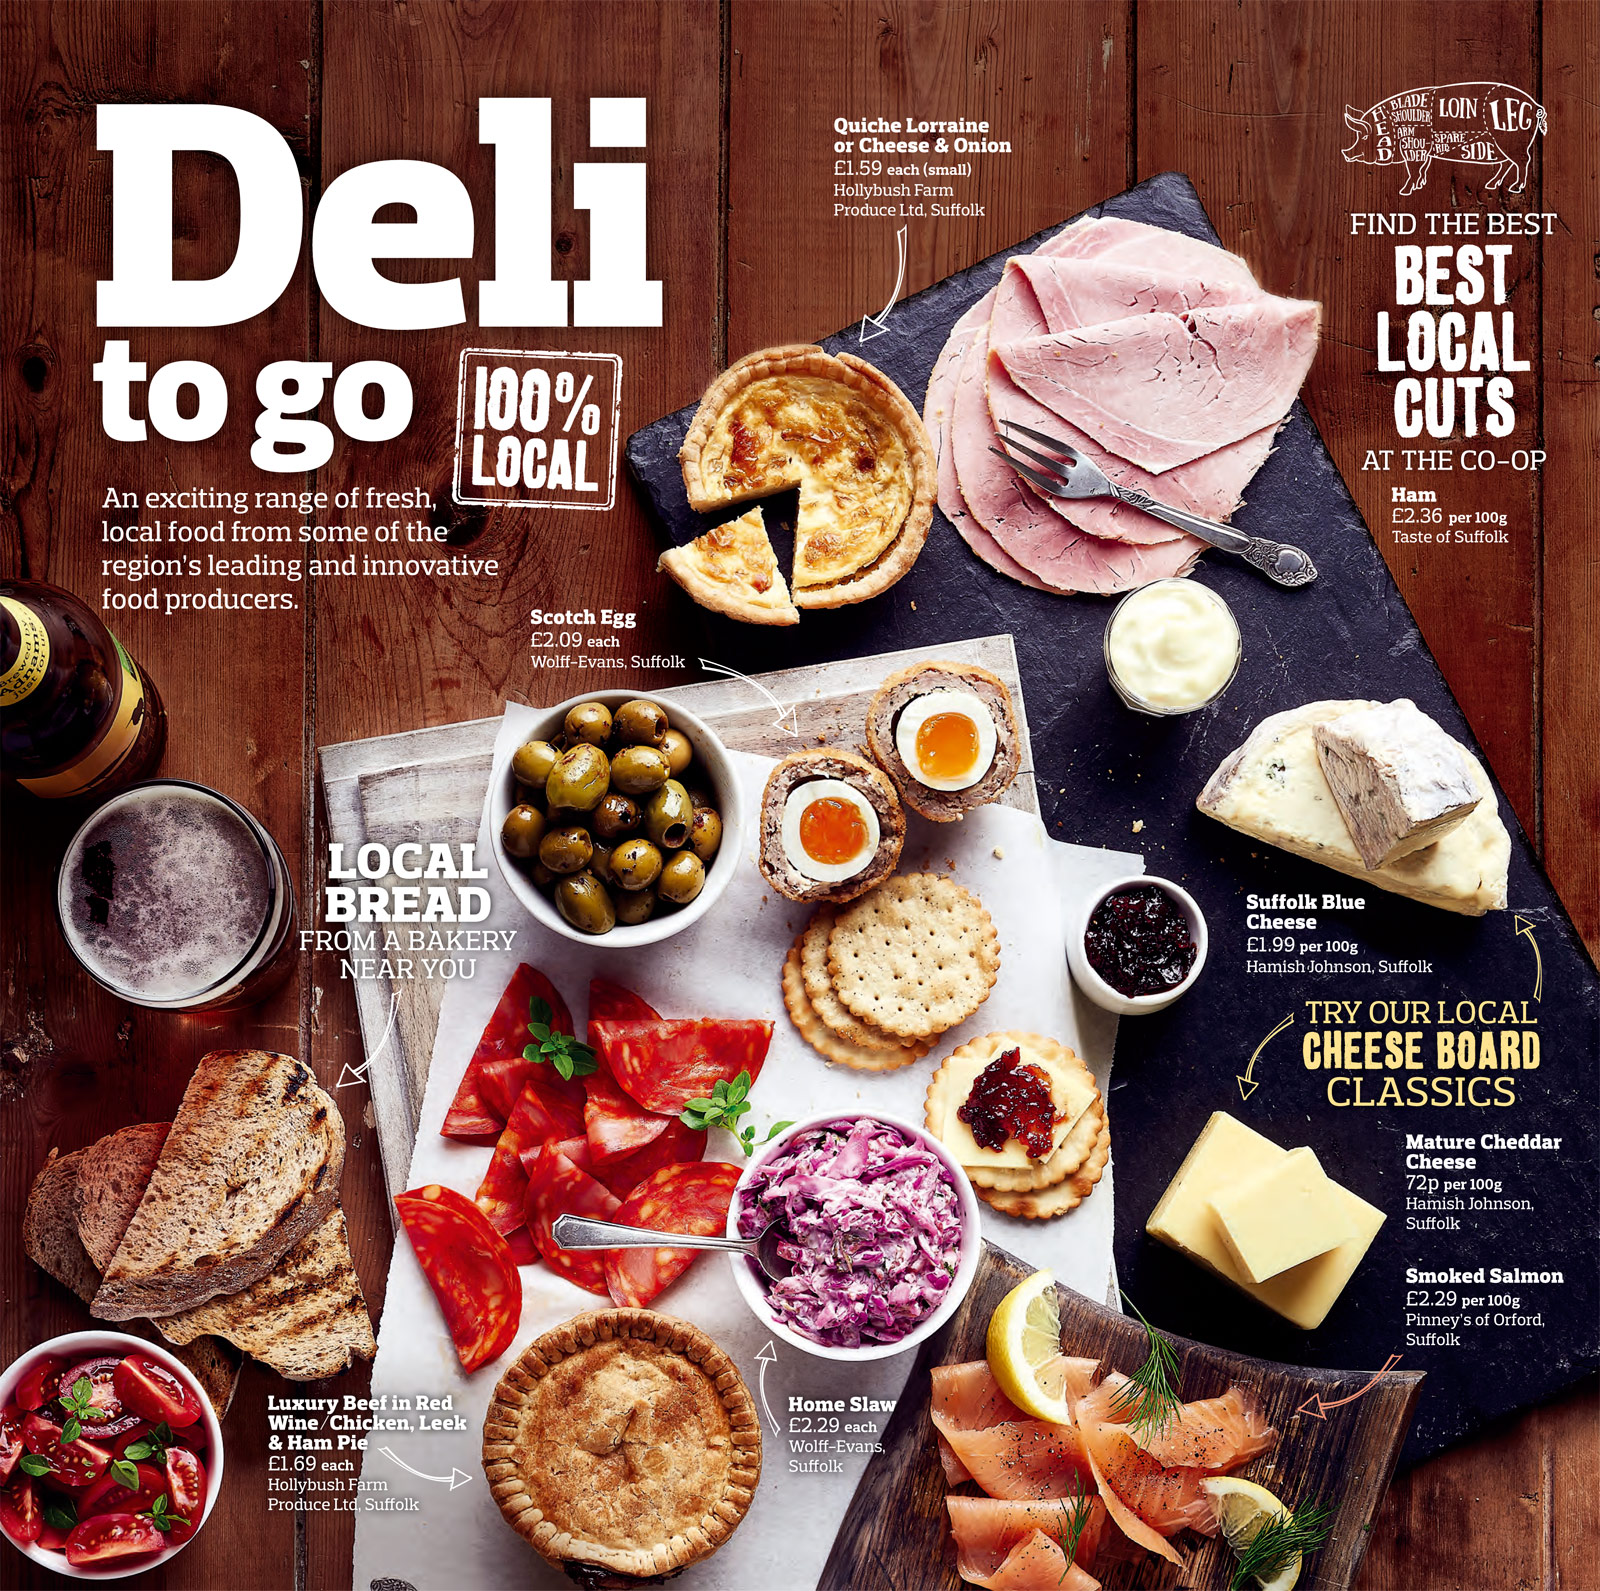 Deli selection from local food producers